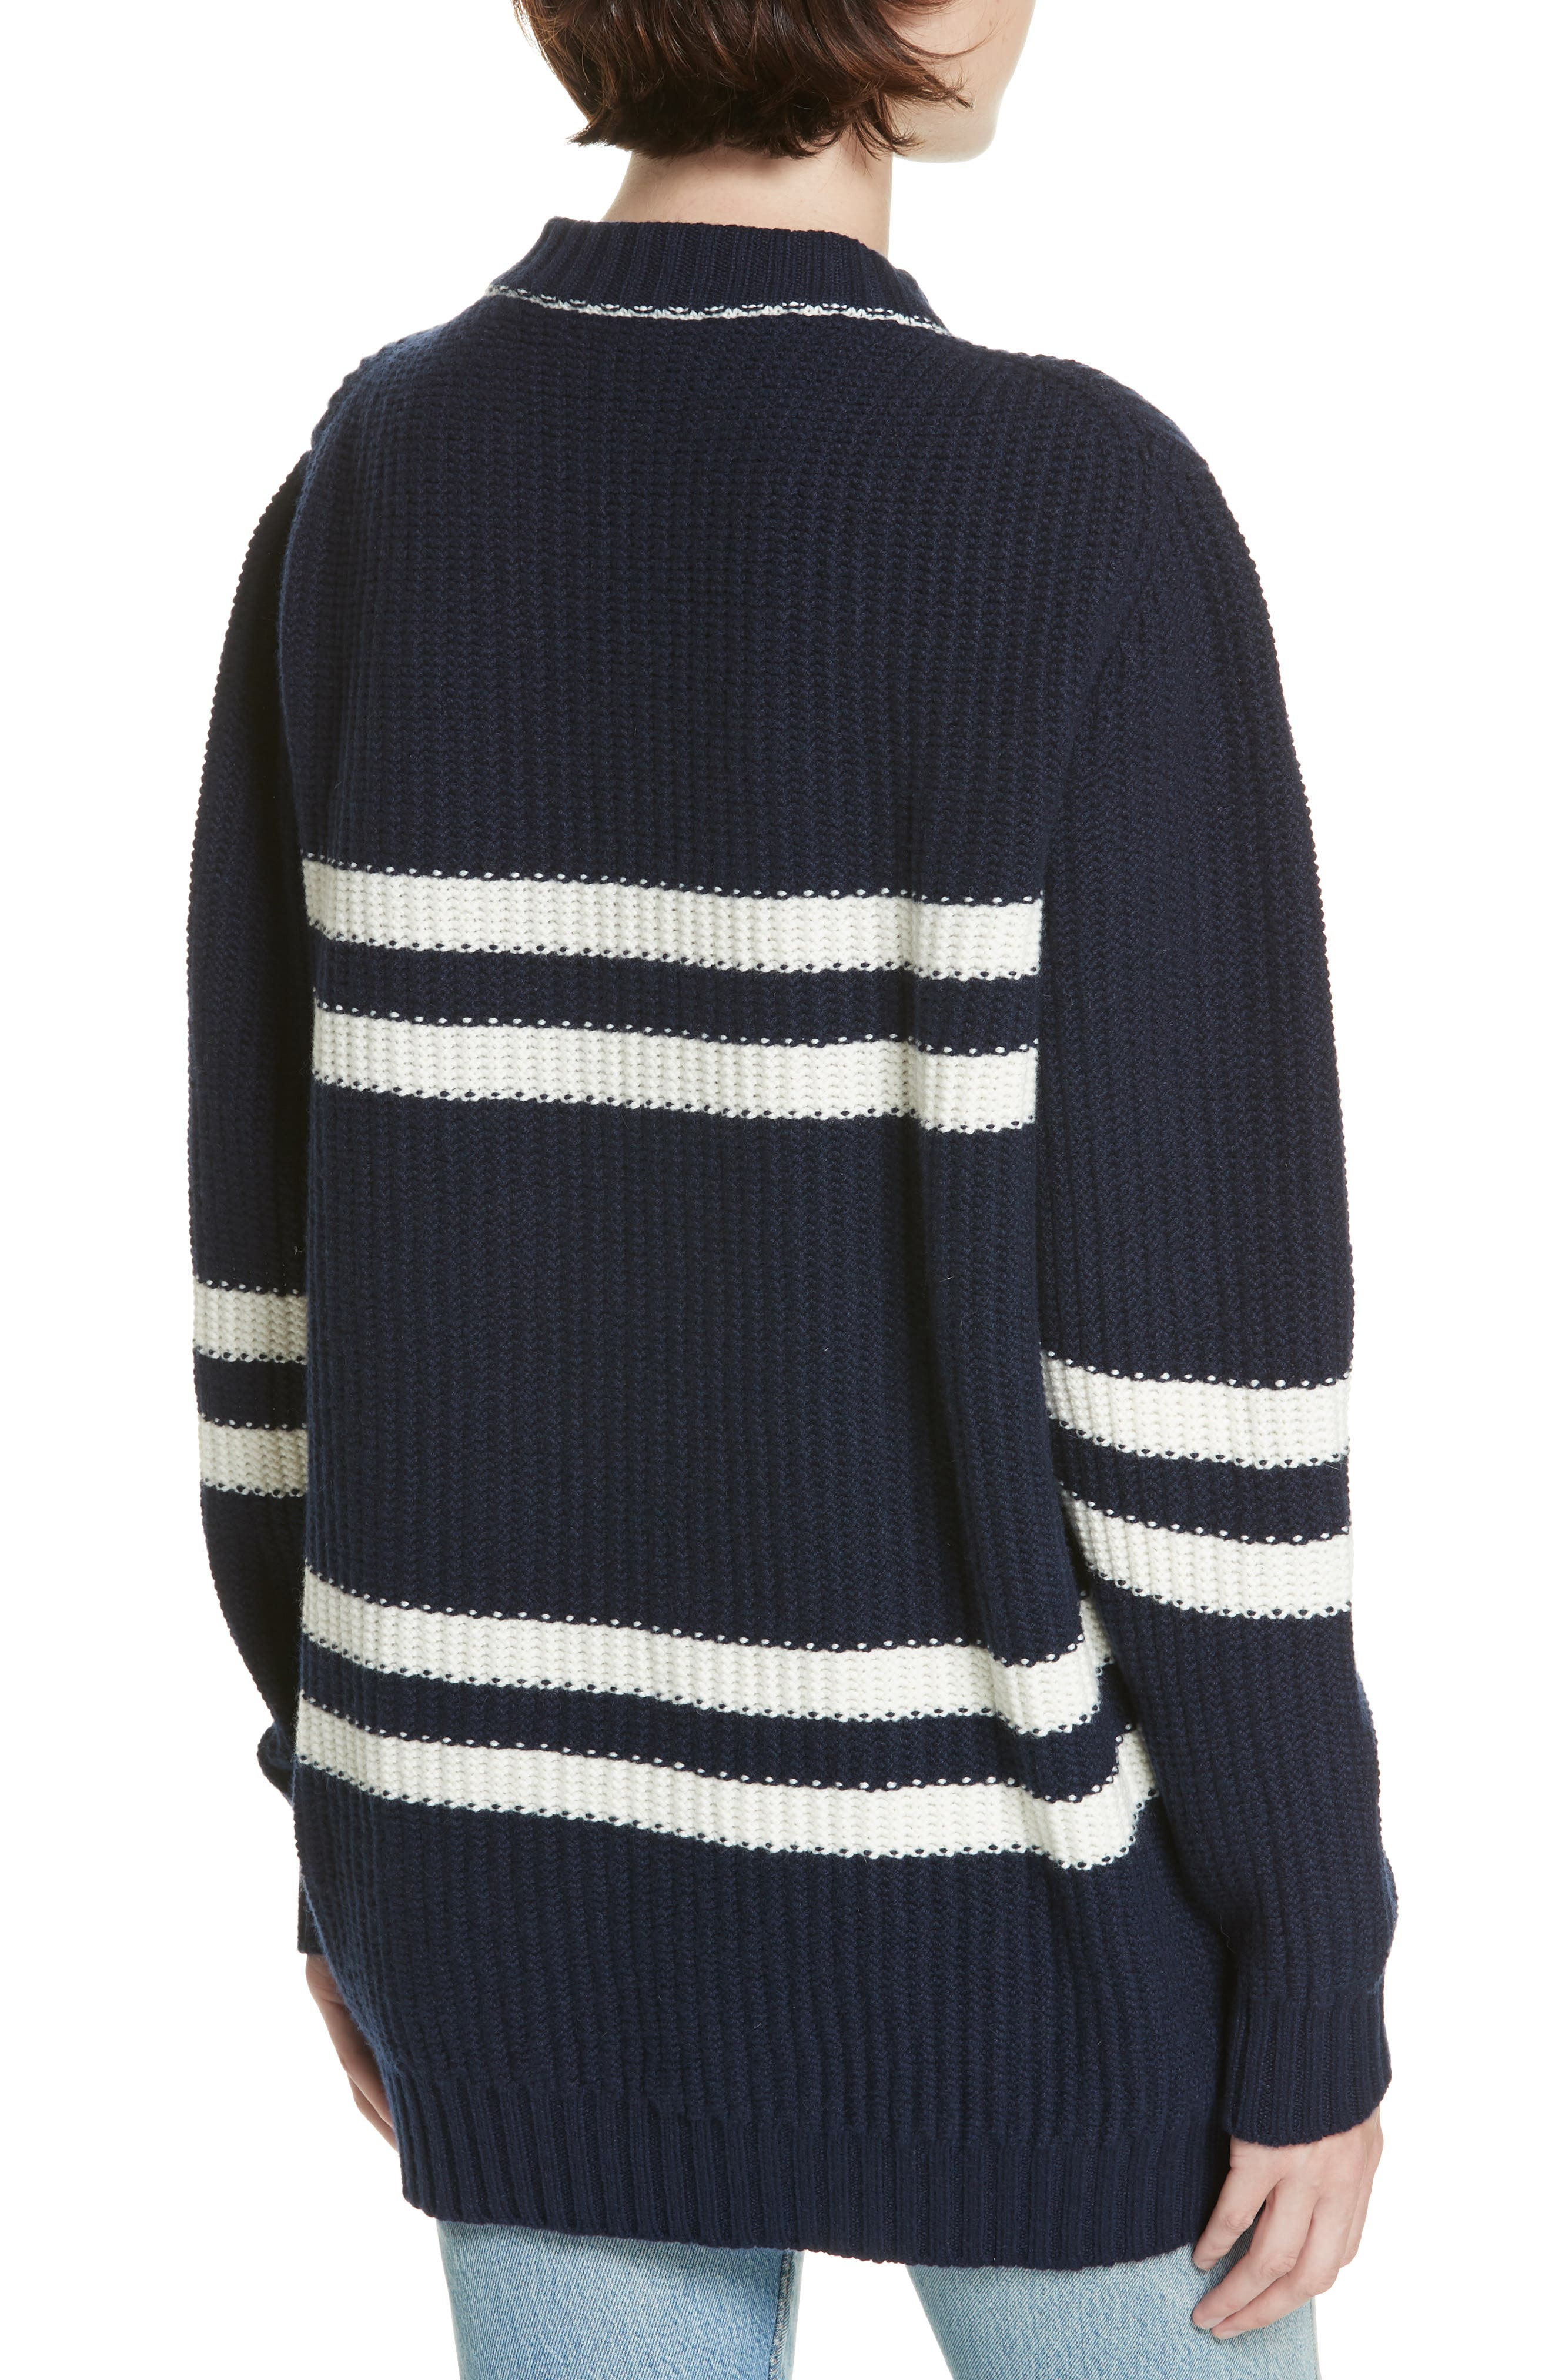 Tieve Stripe Cashmere & Cotton Sweater,                             Alternate thumbnail 2, color,                             NAVY/ ECRU